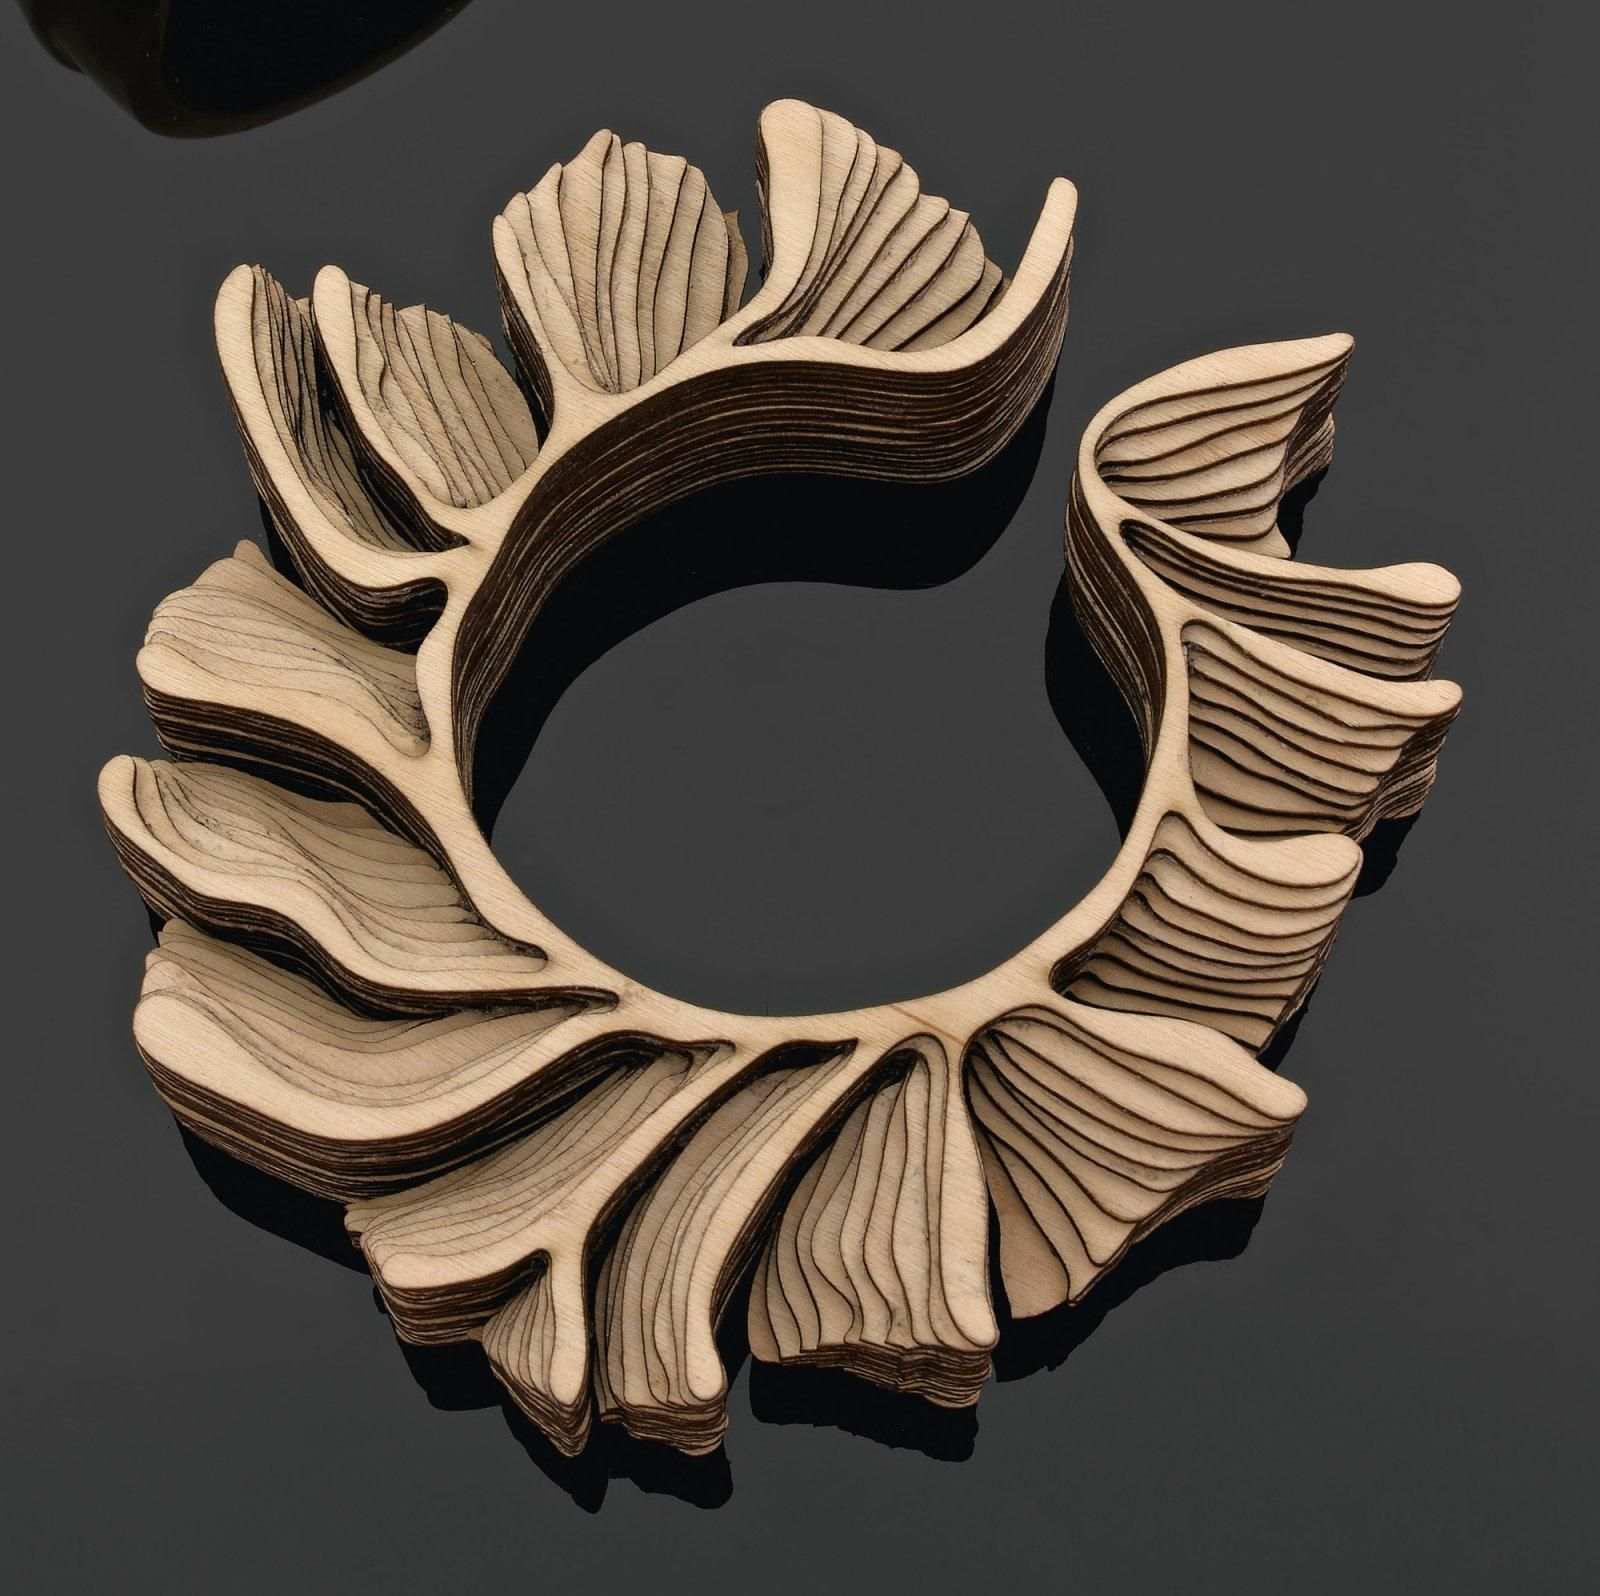 Bangle/Bracelet | Anthony Roussel. "|1600|1596|?|054a39a621b135617247c62f75ed0e8f|False|UNLIKELY|0.30959126353263855